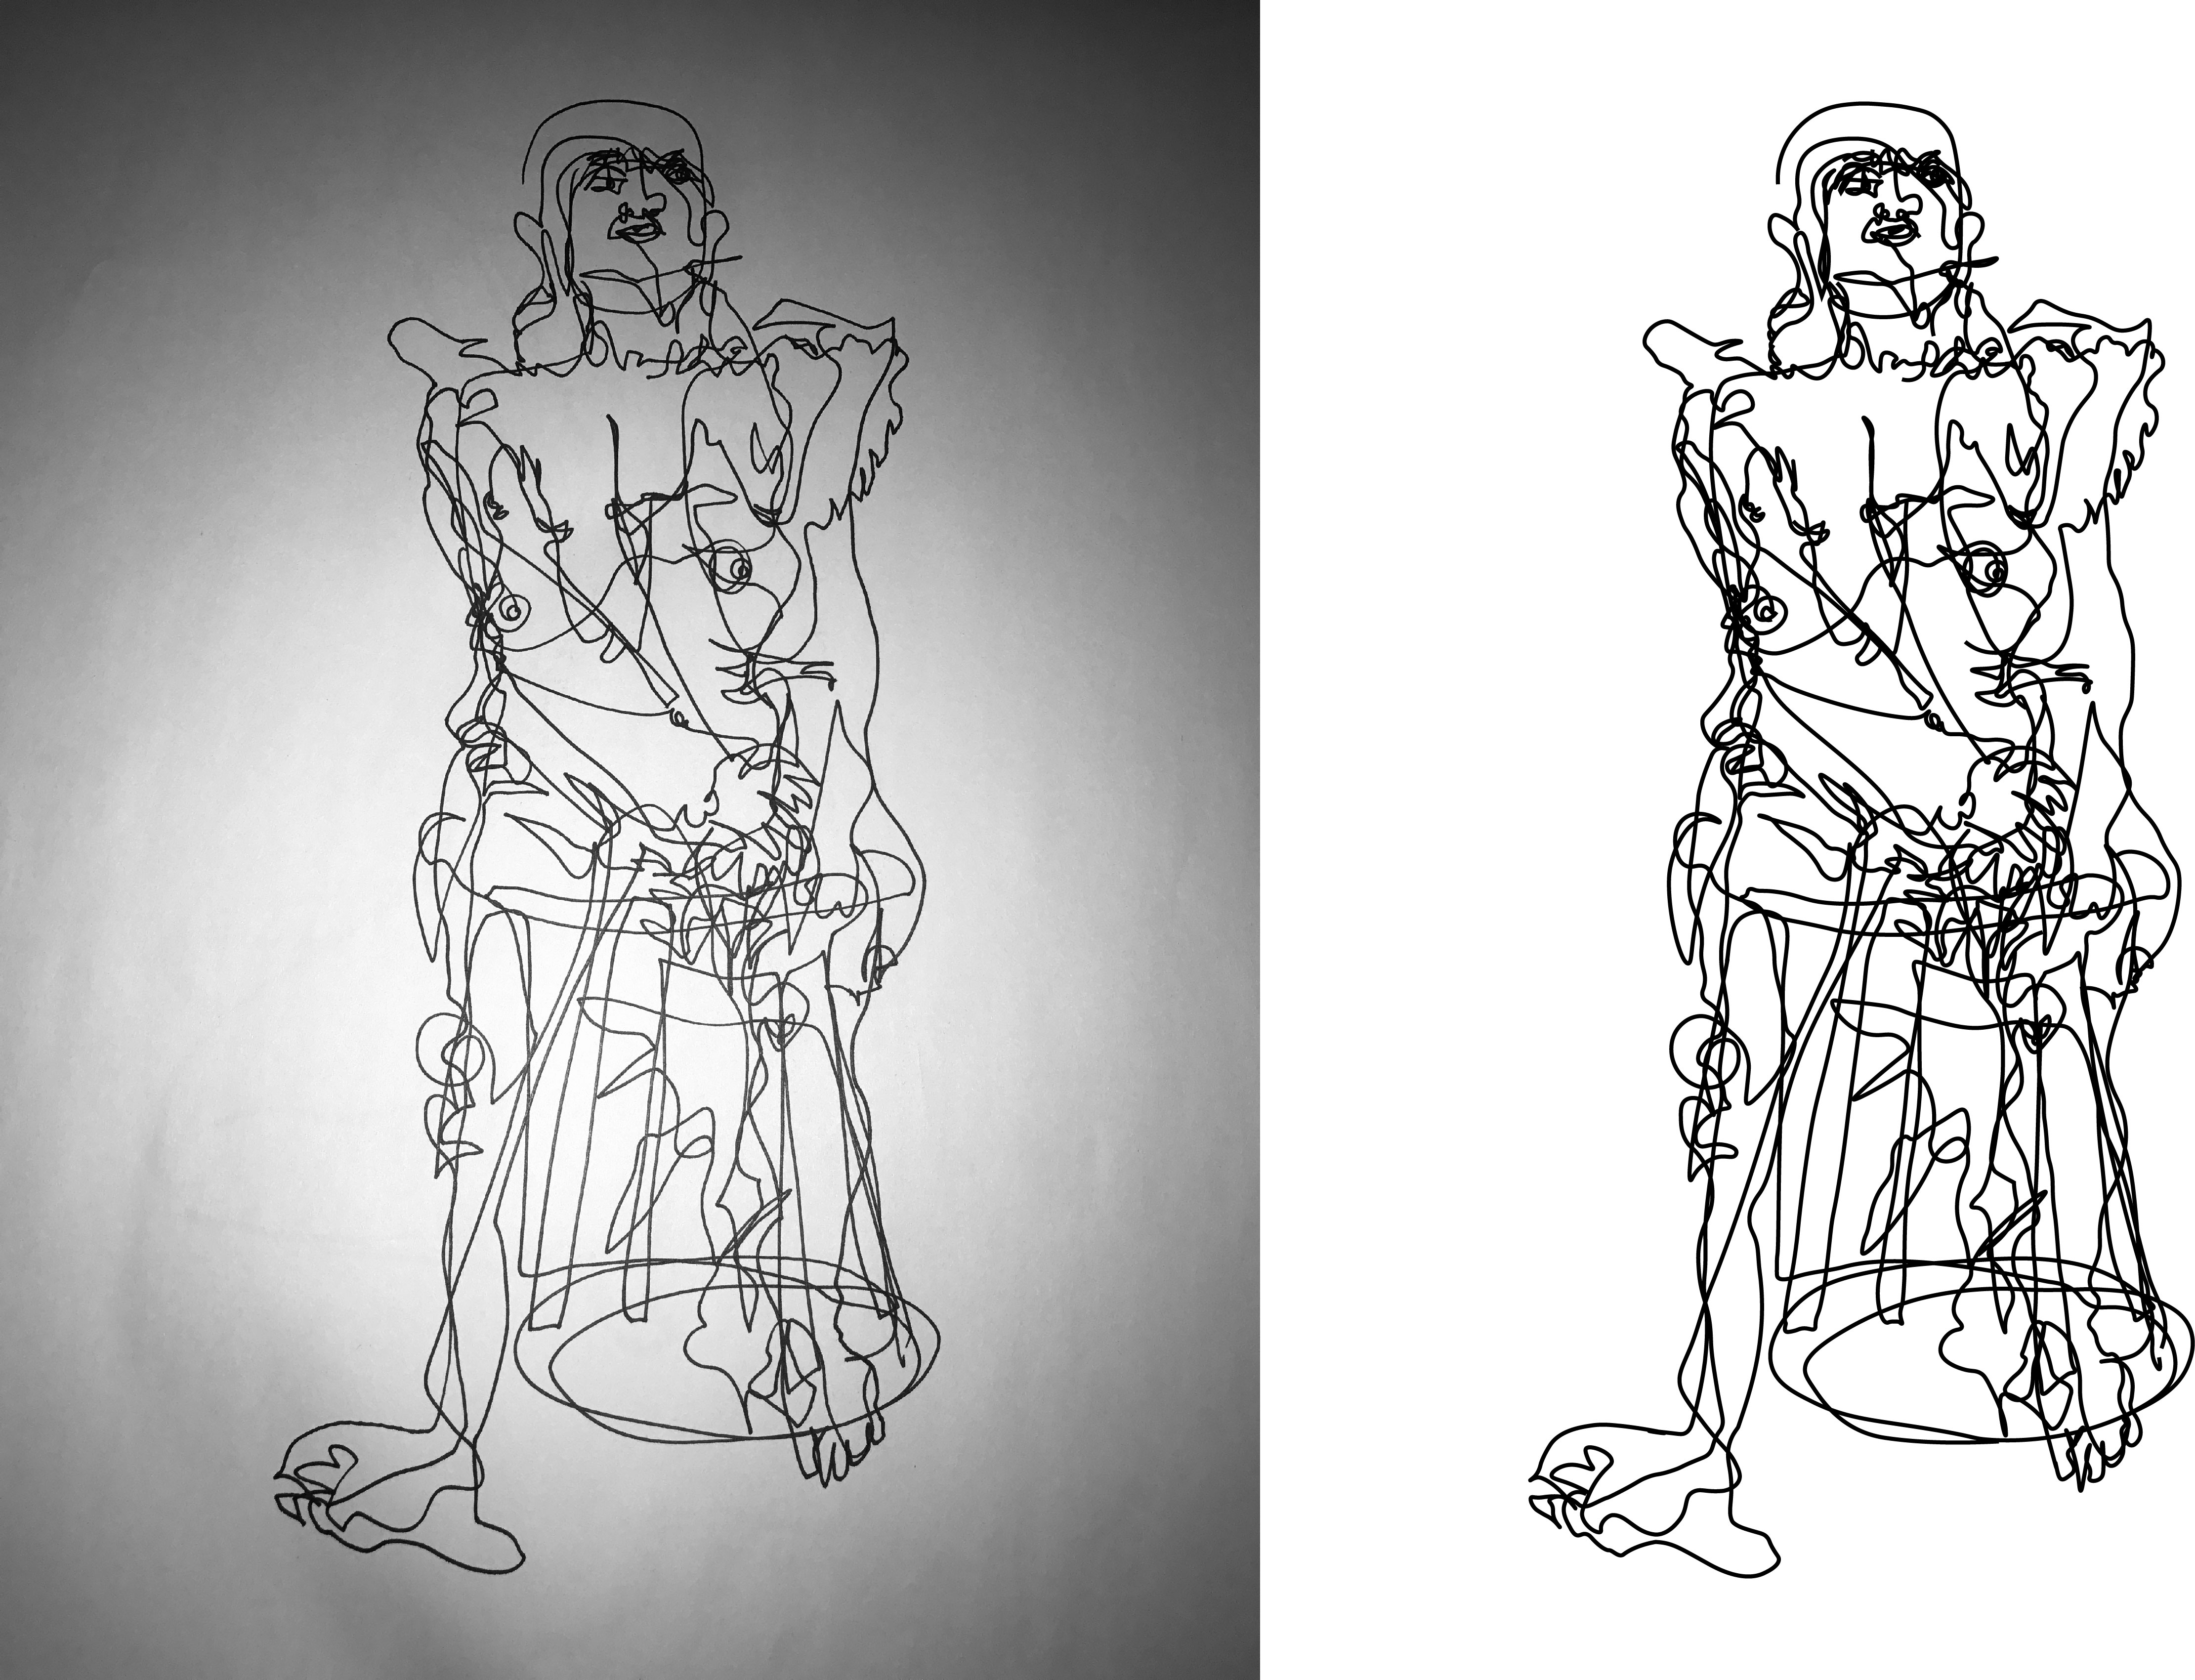 Blind Contour and Contour Lines Illustrator – Jeff Beebe